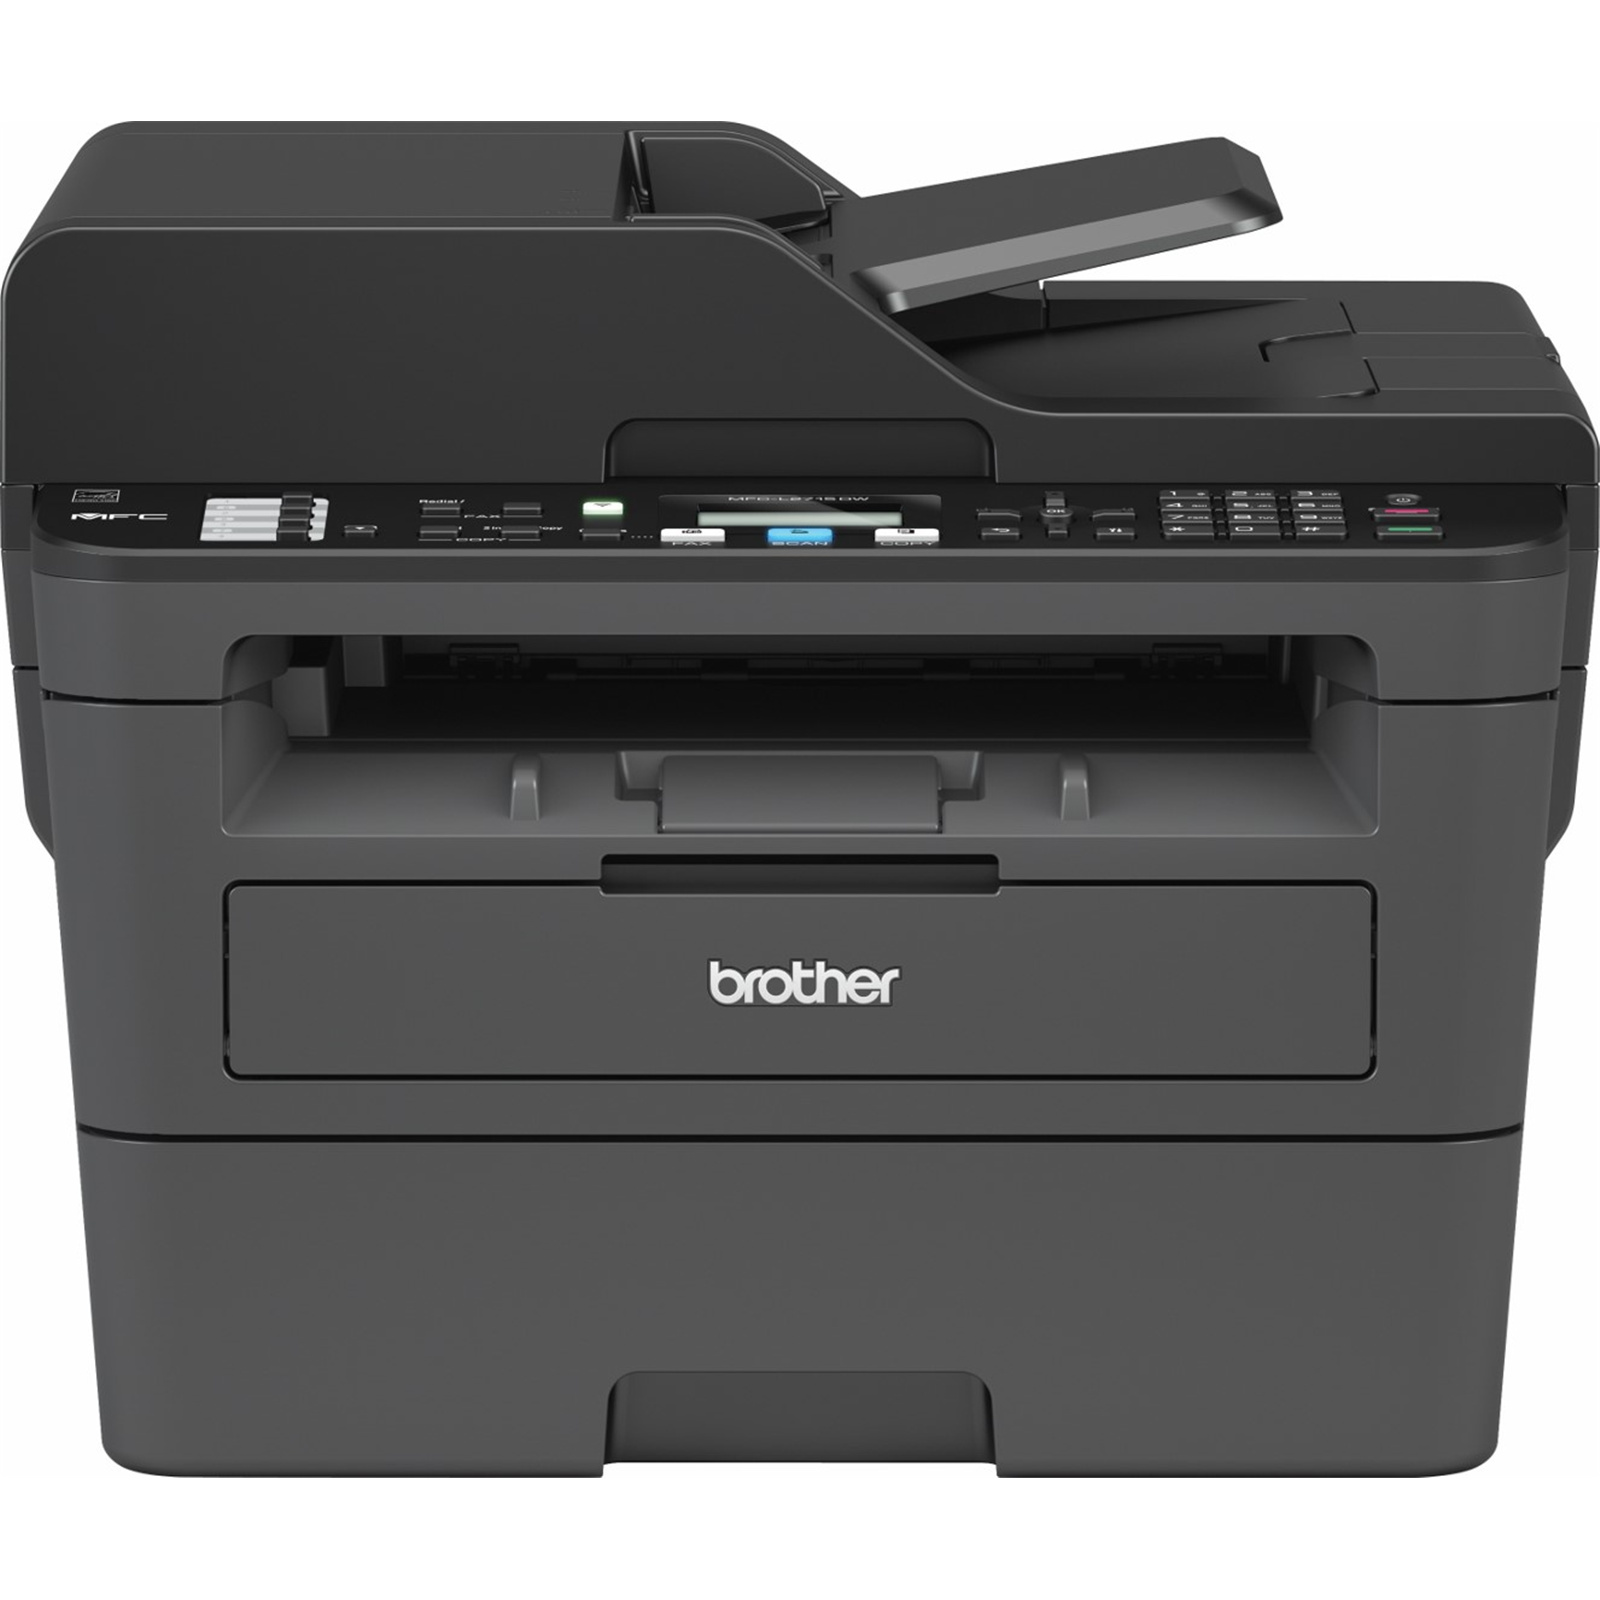 Brother mfcl2713dw mono laser mf print copy scan fax network ready wireless duplex 2sides print 50sheets adf 250 sheets tray 30ppm black